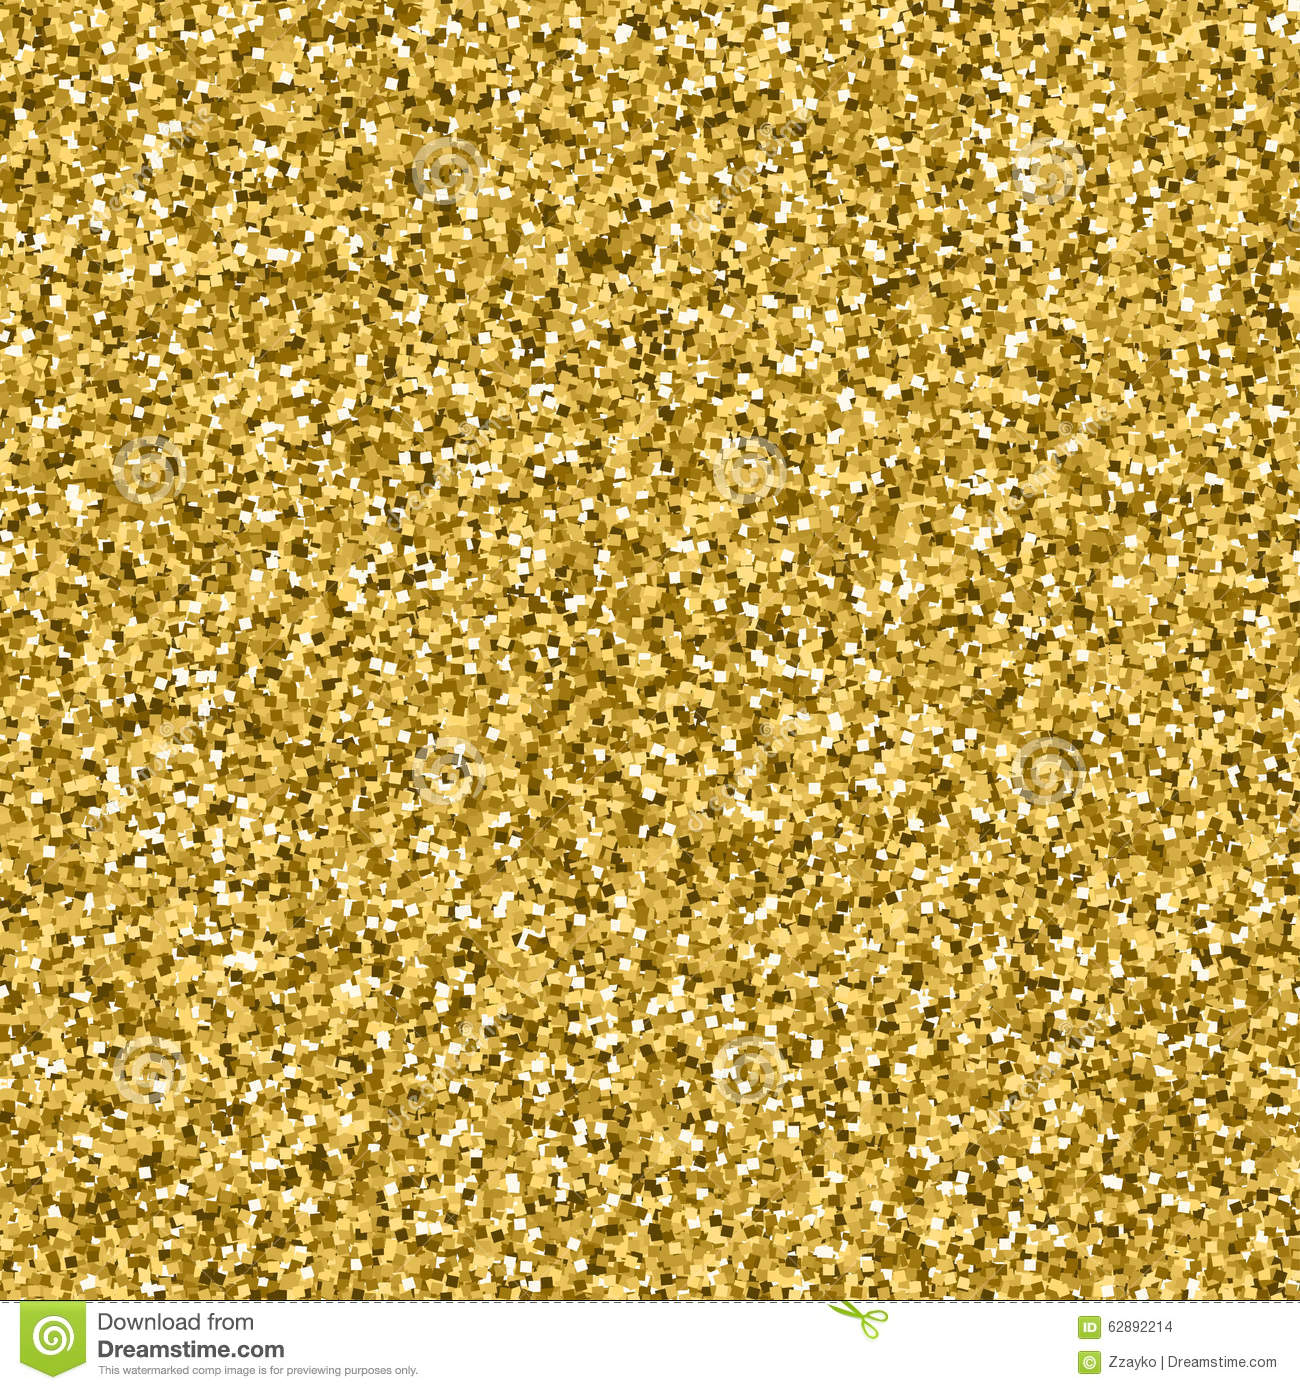 Glitter Gold: Gold Glitter Texture Stock Illustration. Illustration Of